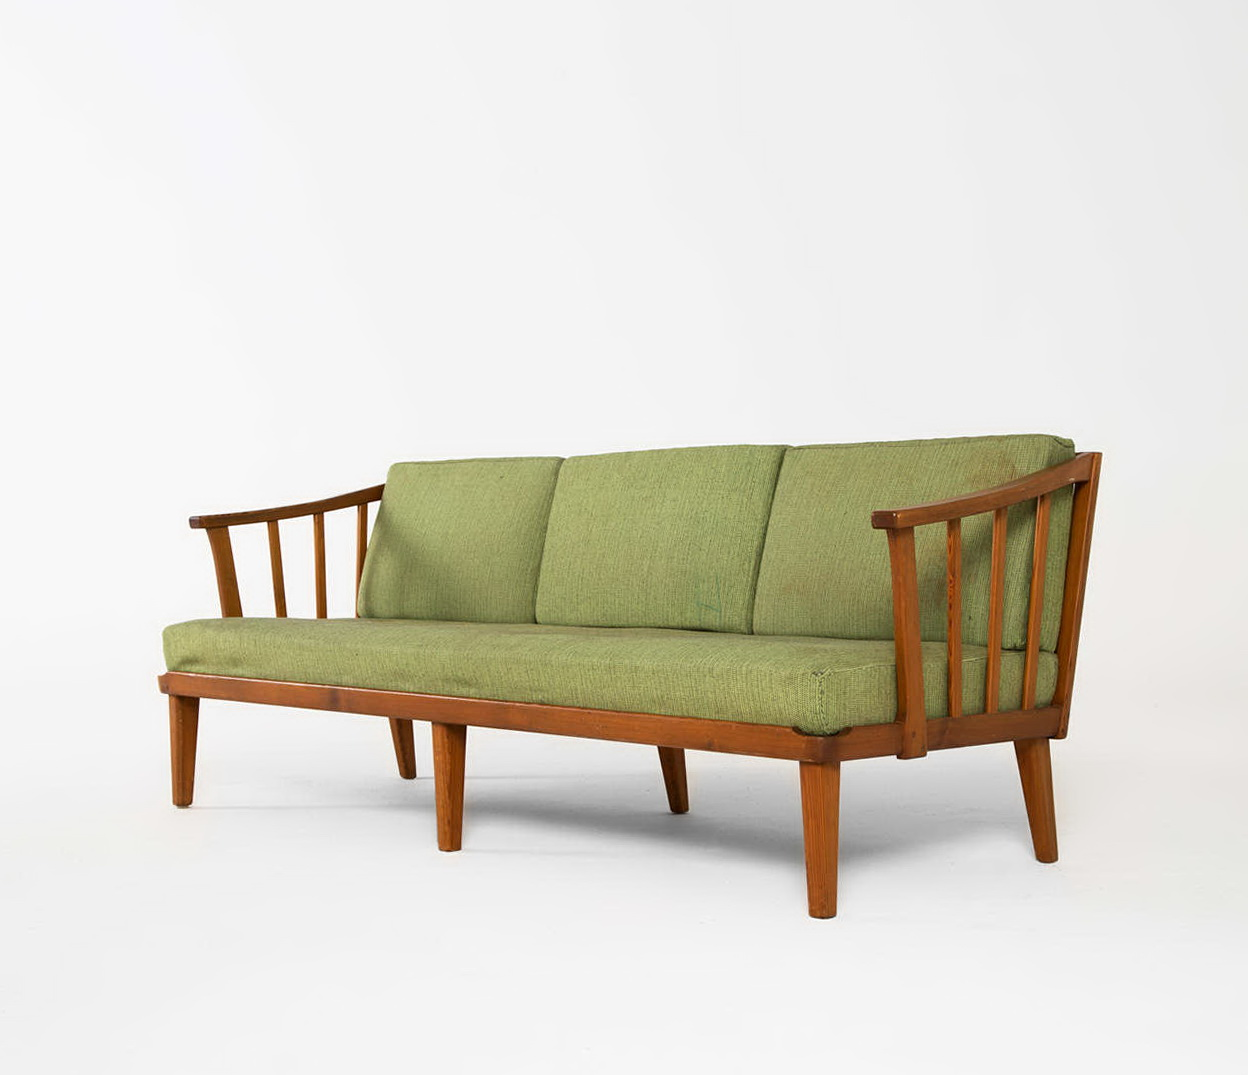 Restuff Couch Cushions Toronto